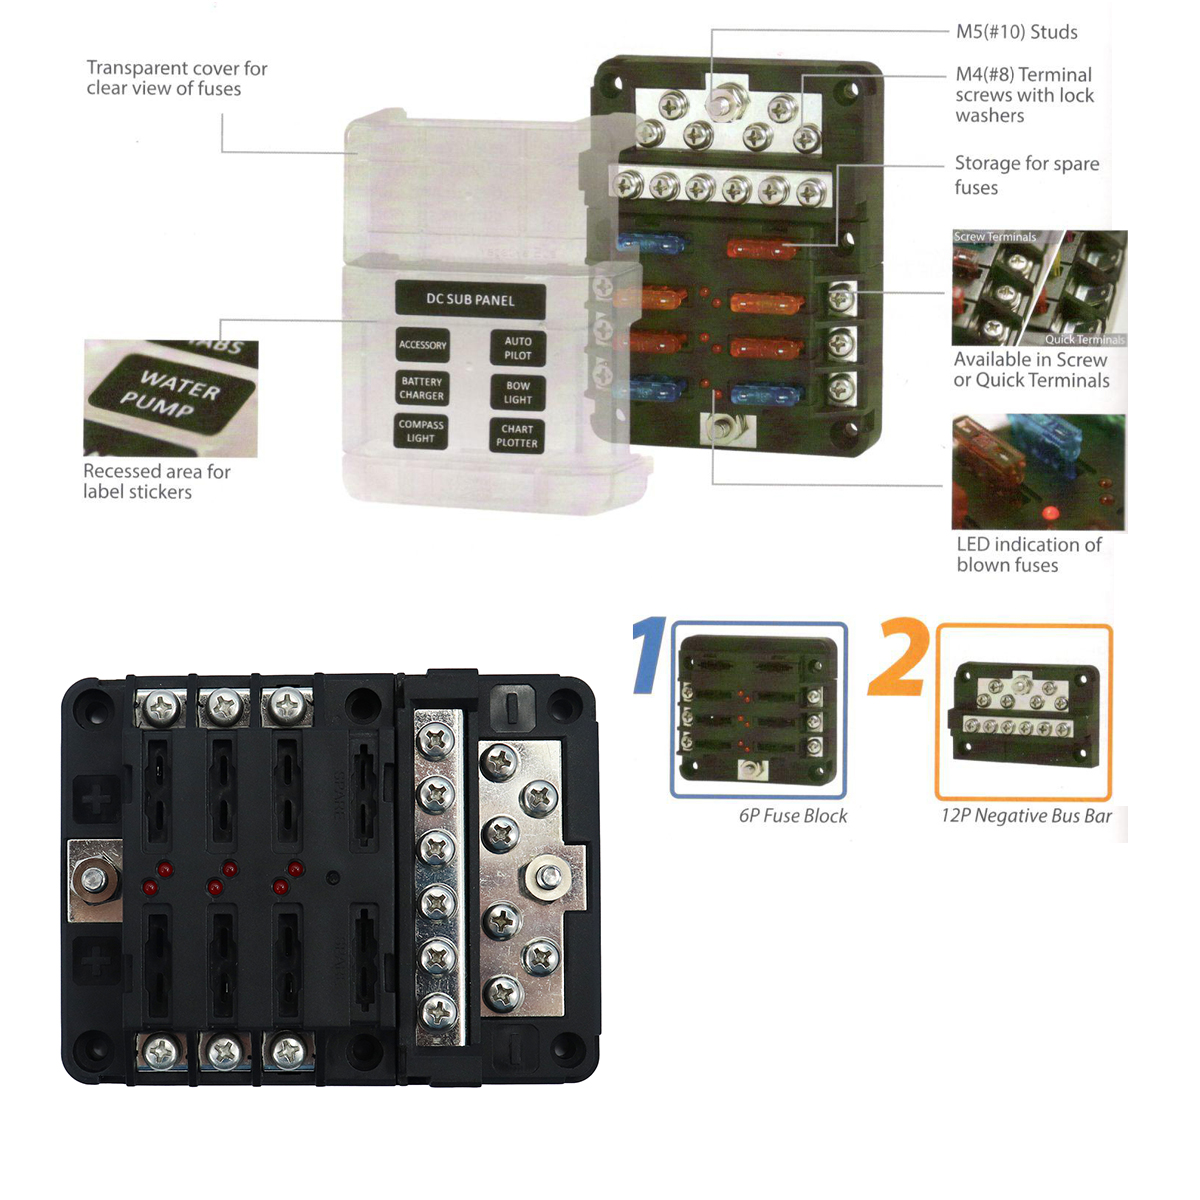 F3618 DC Fuse Box With Lamp 12 Bit Negative Common Box Modular Design Blade  Fuse Block LED indicator For Car RV Boat-in Fuses from Automobiles &  Motorcycles ...